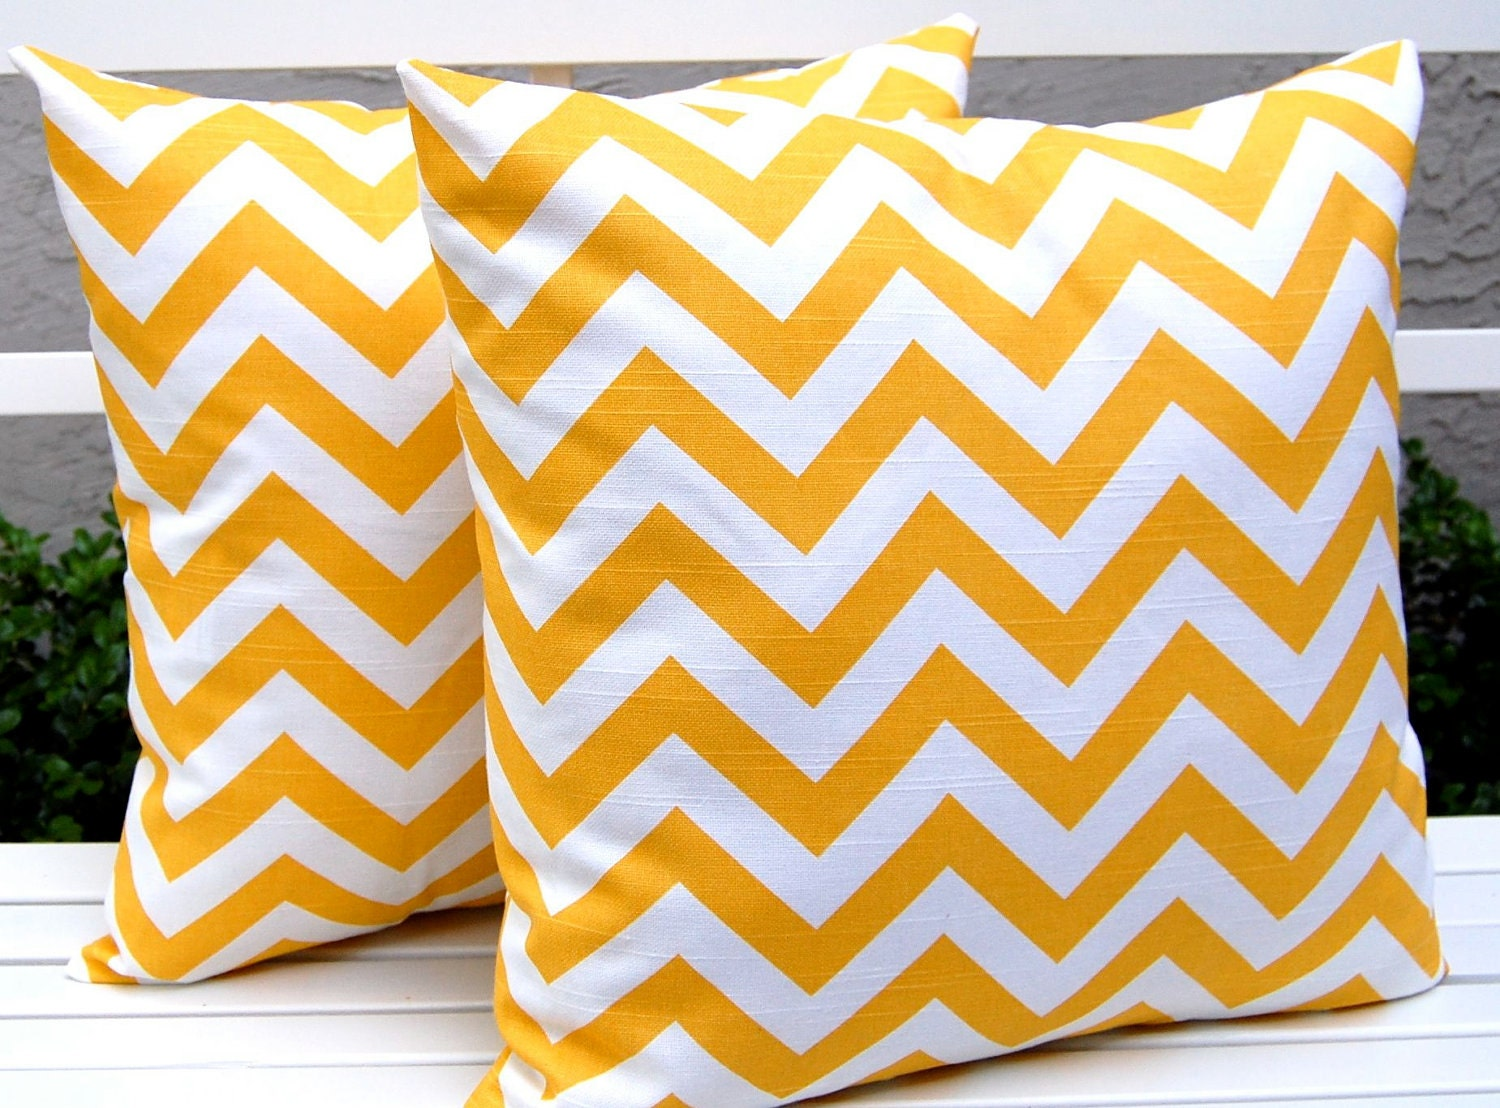 Chevron Ikat Pillows Pillow Covers Combo  20 x 20 Inches with 18 x 18 Inches - Corn Yellow and White Chipper and Chevron Zig Zag